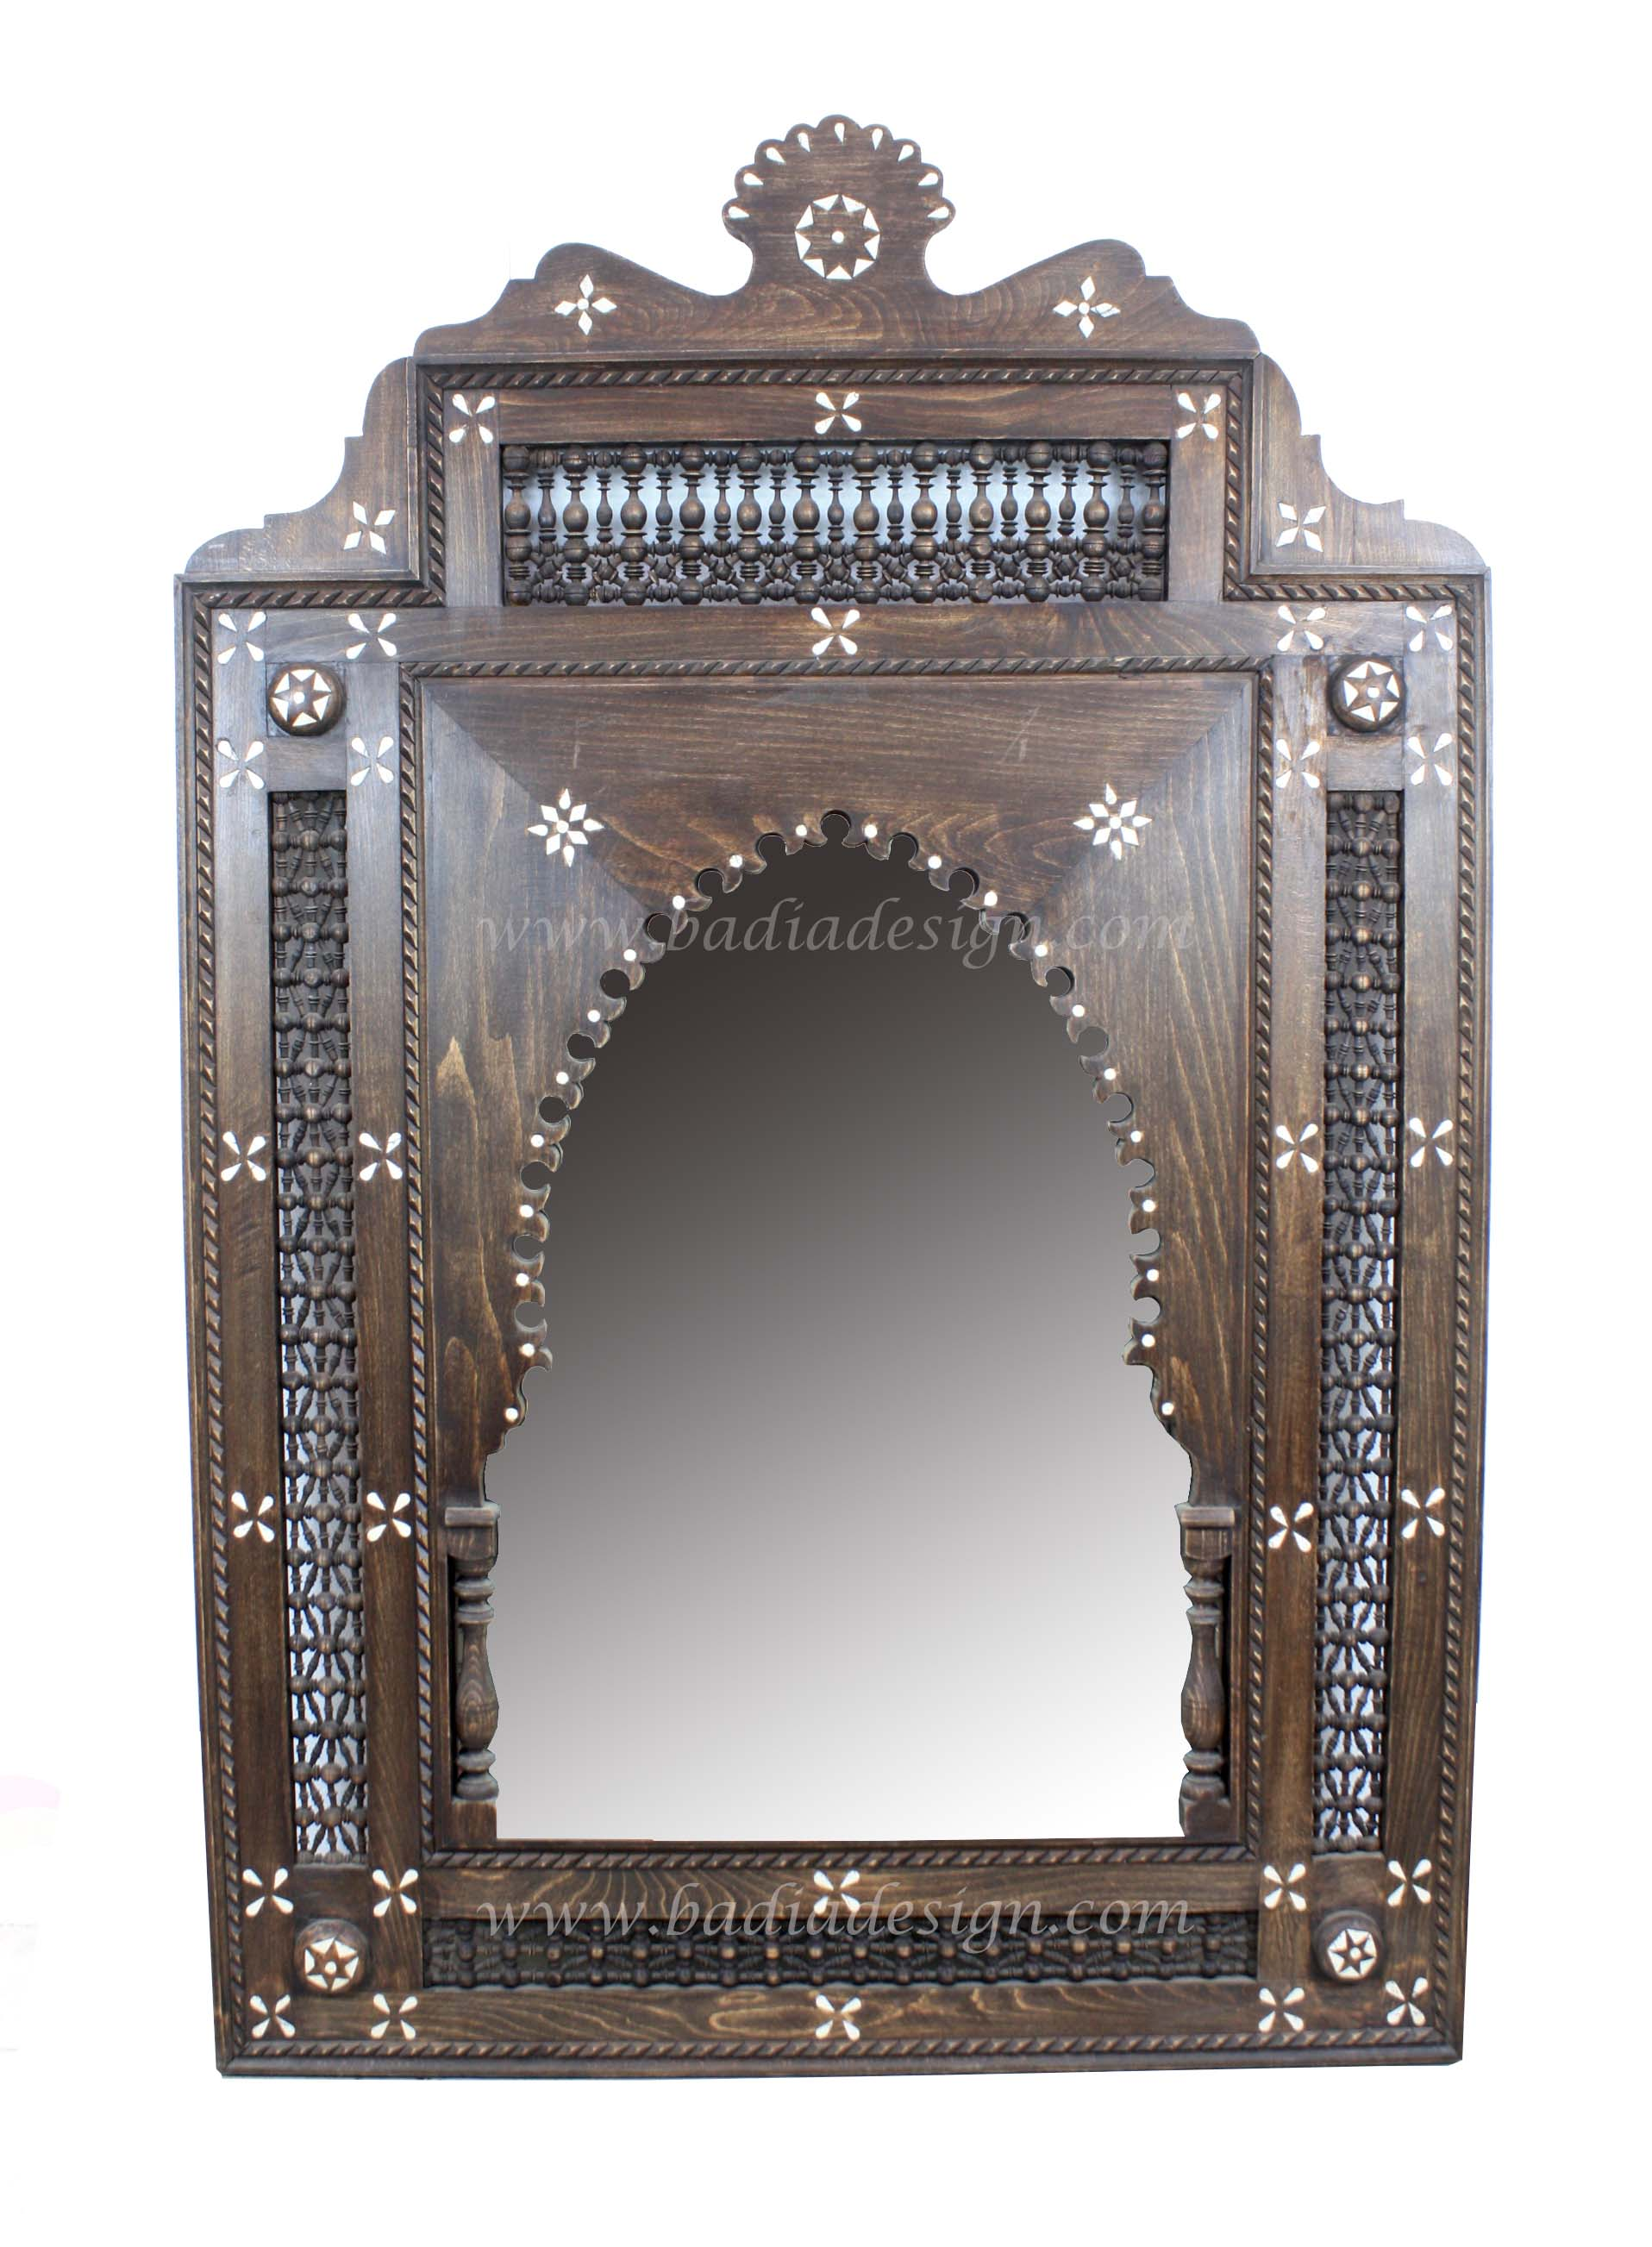 moroccan-bone-inlay-mirror-m-mop027.jpg